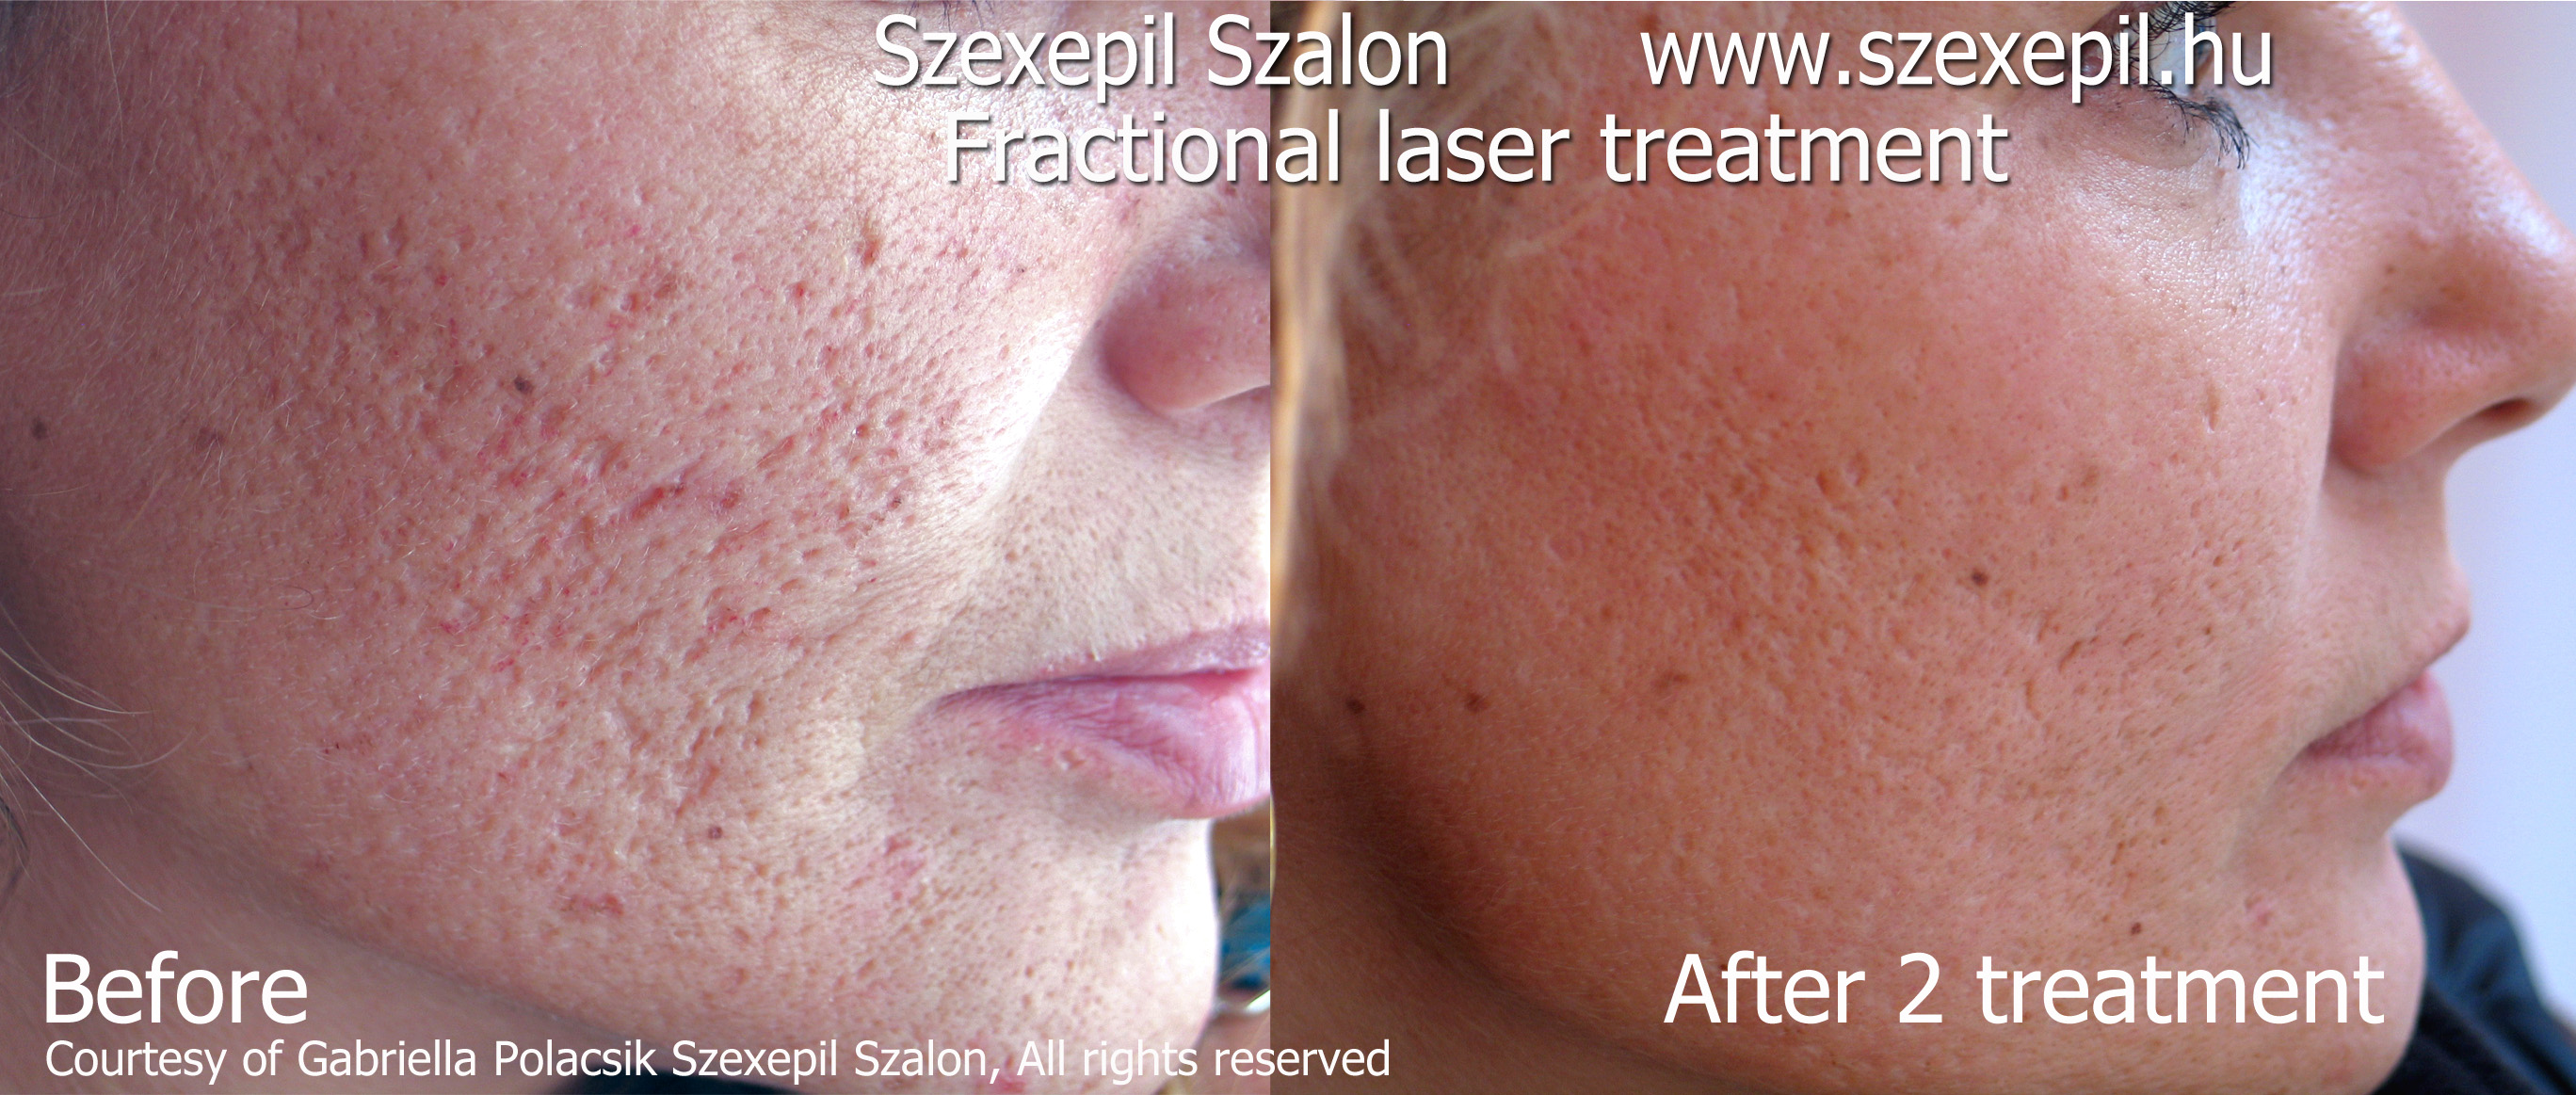 Frakcionlt lzerkezels frakcionlt lzeres brfeljts fractional laser before and after acne scar treatment fractional laser sciox Choice Image